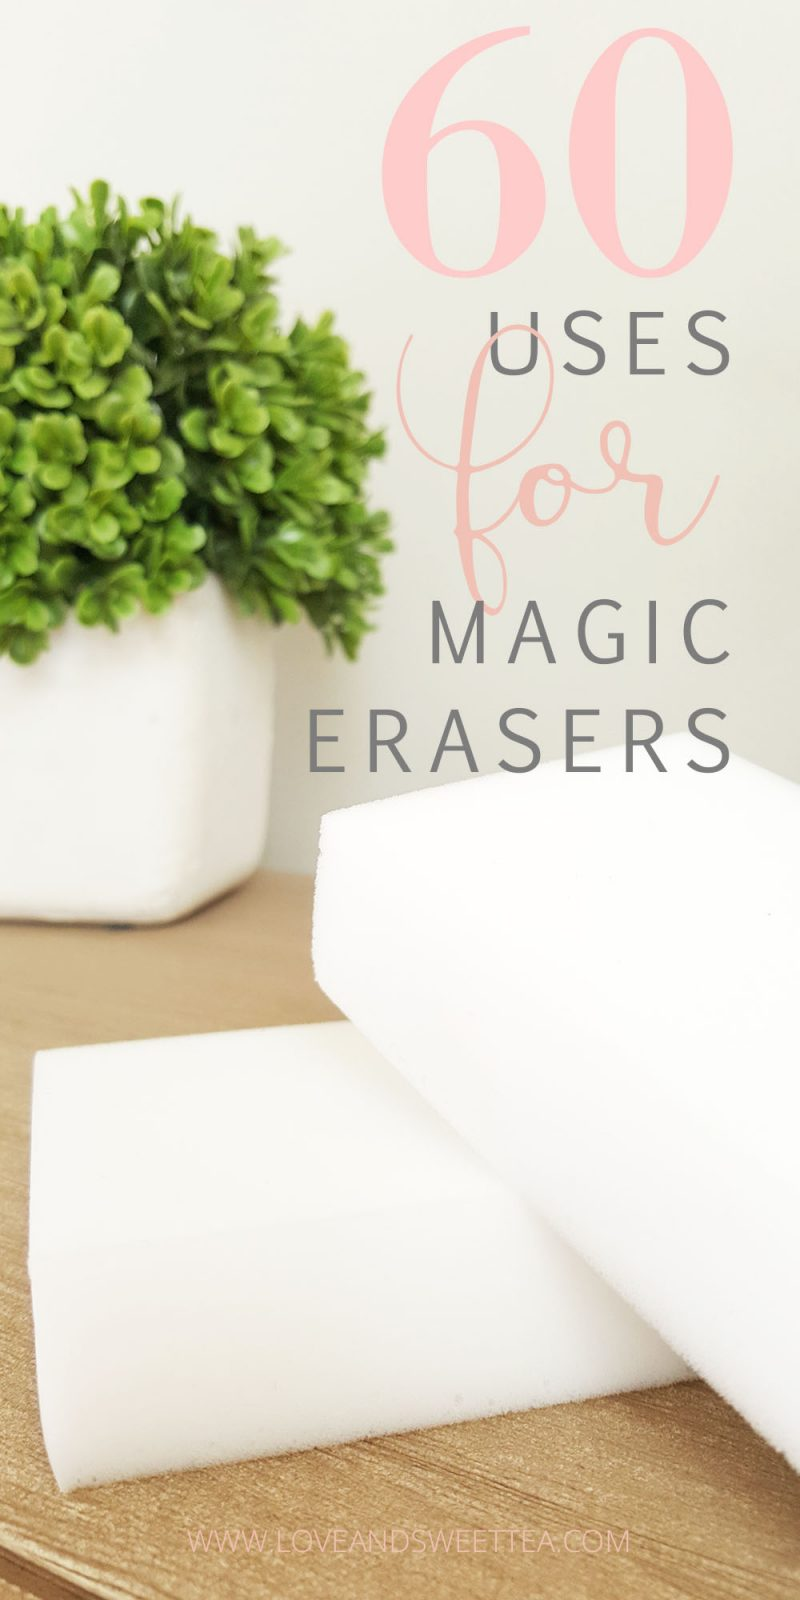 Here are some of my favorite lists of uses for magic erasers! You never know what you'll learn from one of these!